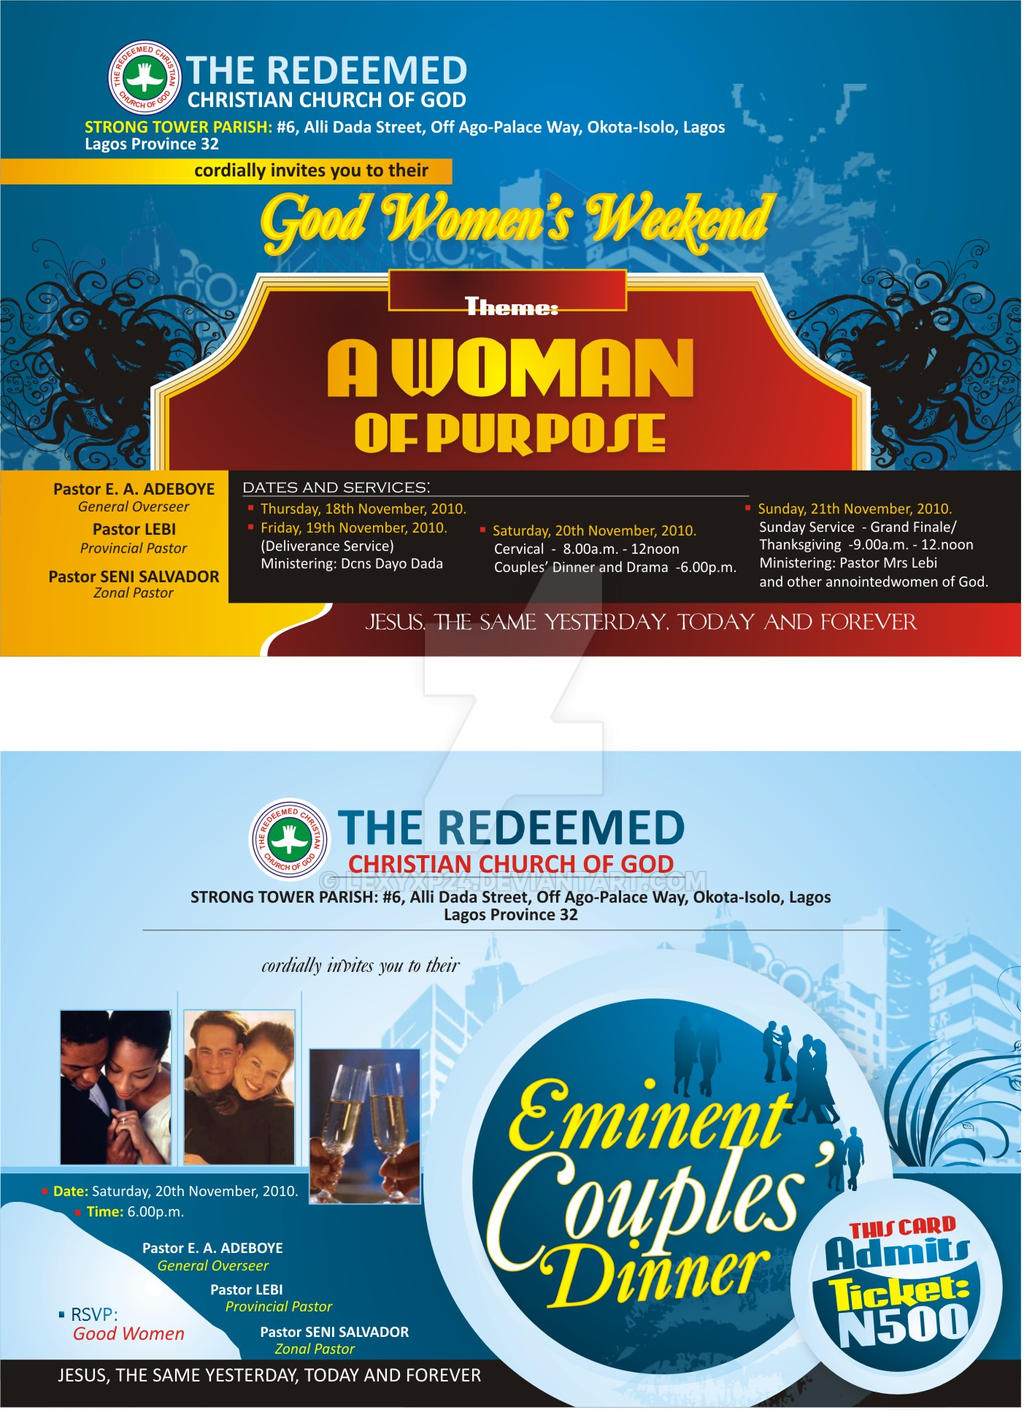 redeemed church dinner card design lexyxp24 by lexyxp24 on redeemed church dinner card design lexyxp24 by lexyxp24